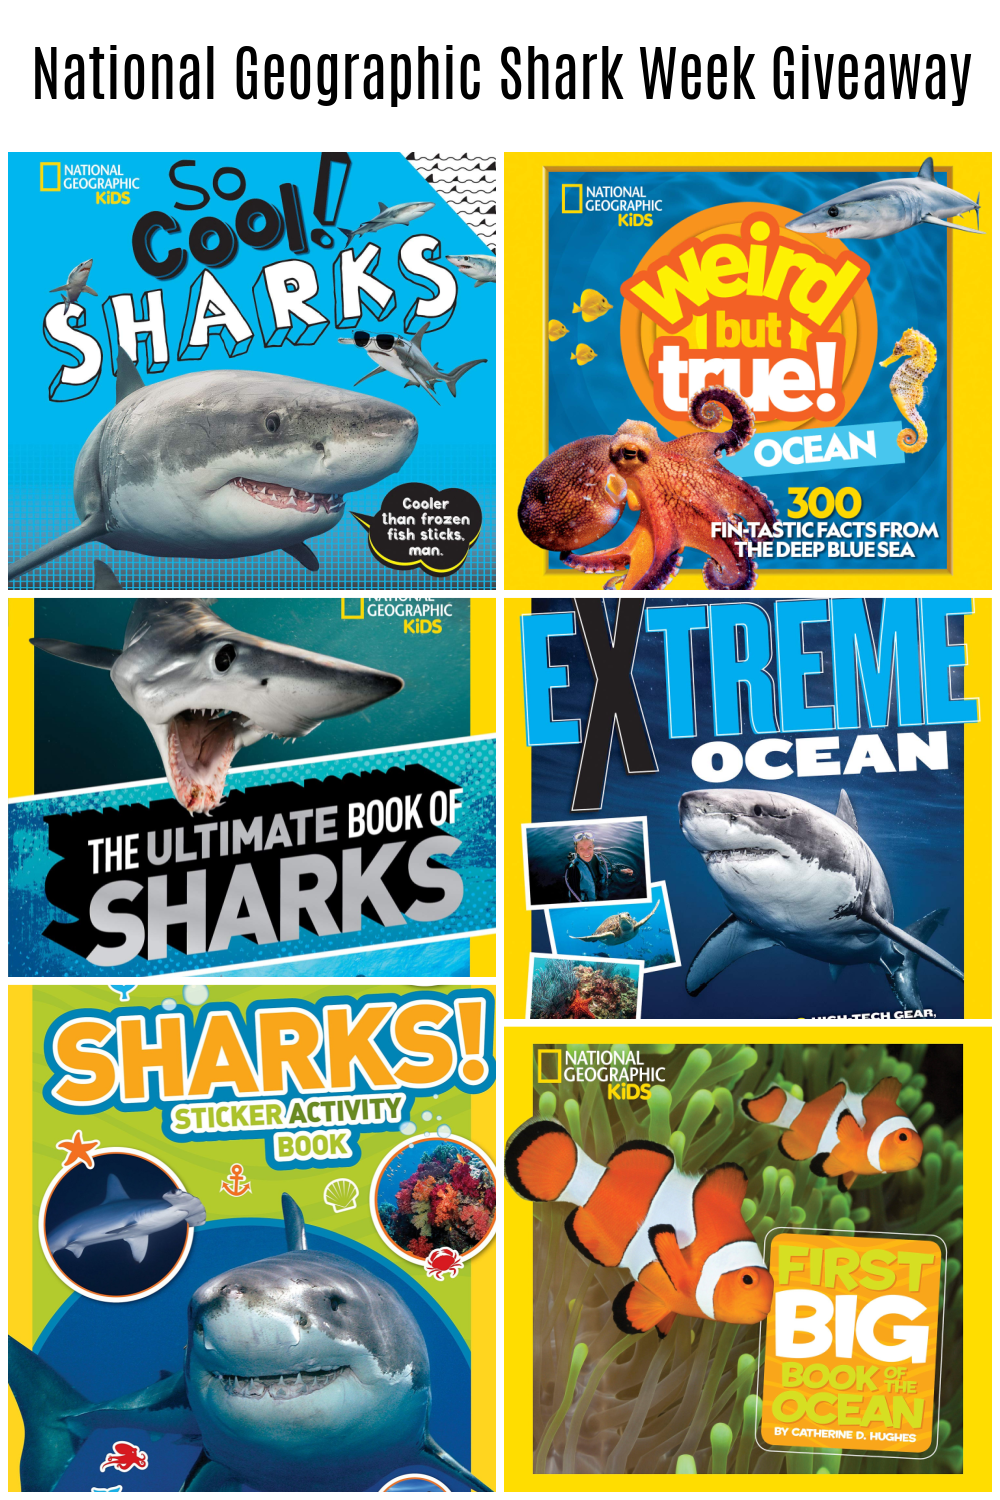 Shark Week Returns July 11th PLUS Shark-Tastic Summer Reading from National Geographic